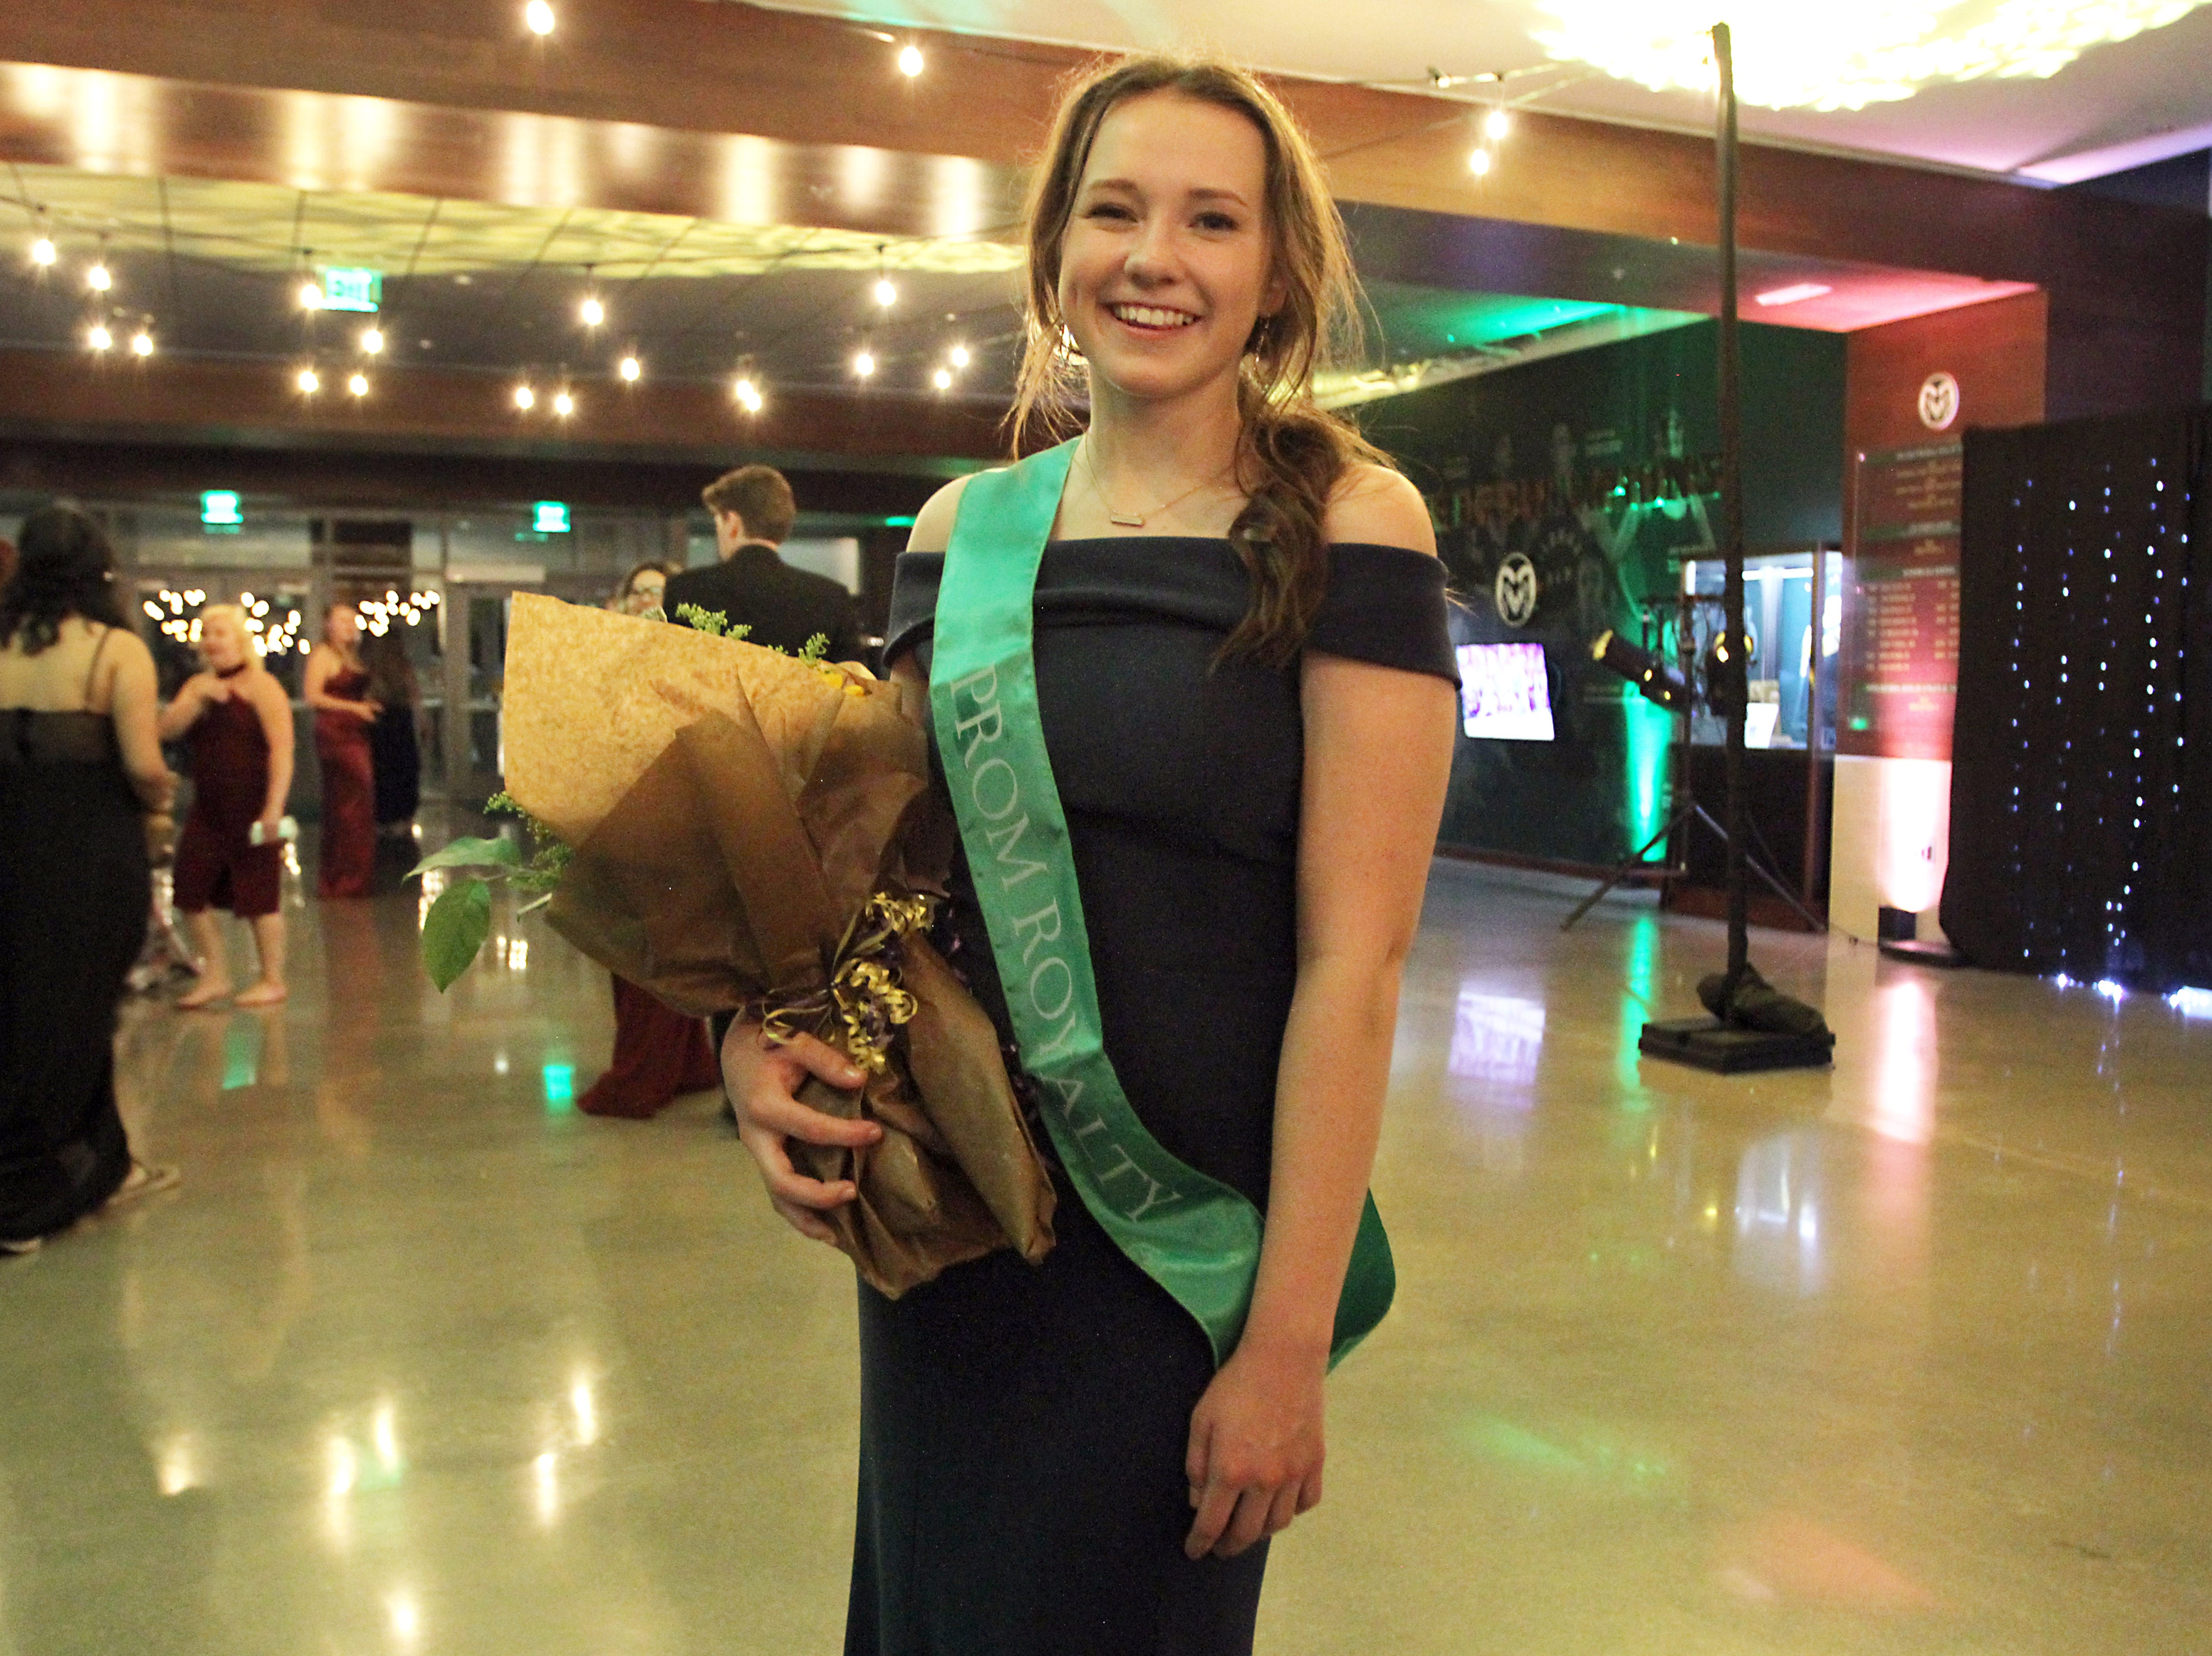 Joel Blocker / For the Coloradoan Carly Rockwell, a senior at Fort Collins High School, posses for a photo after being named to prom royalty, during the Fort Collins High School prom held at Canvas stadium Saturday night.